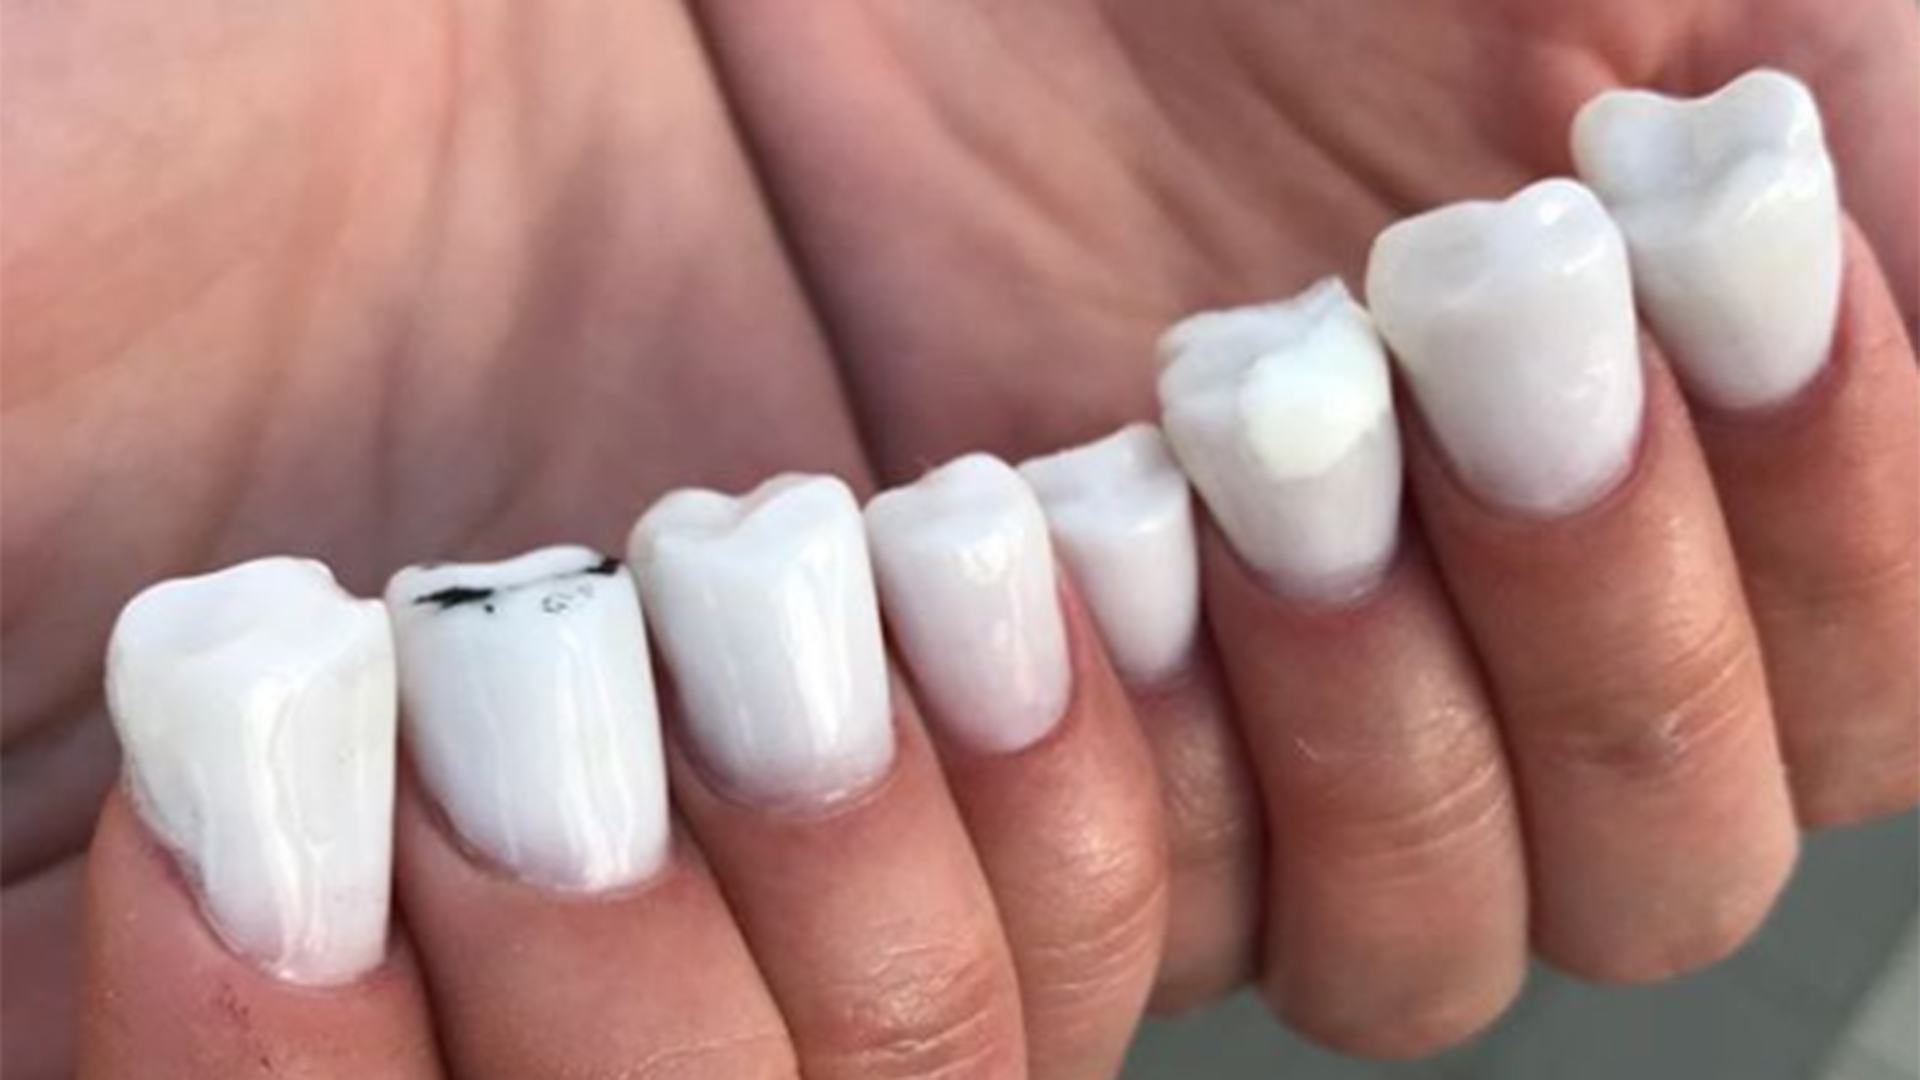 Molar nails\' are the creepy new nail trend taking over Instagram